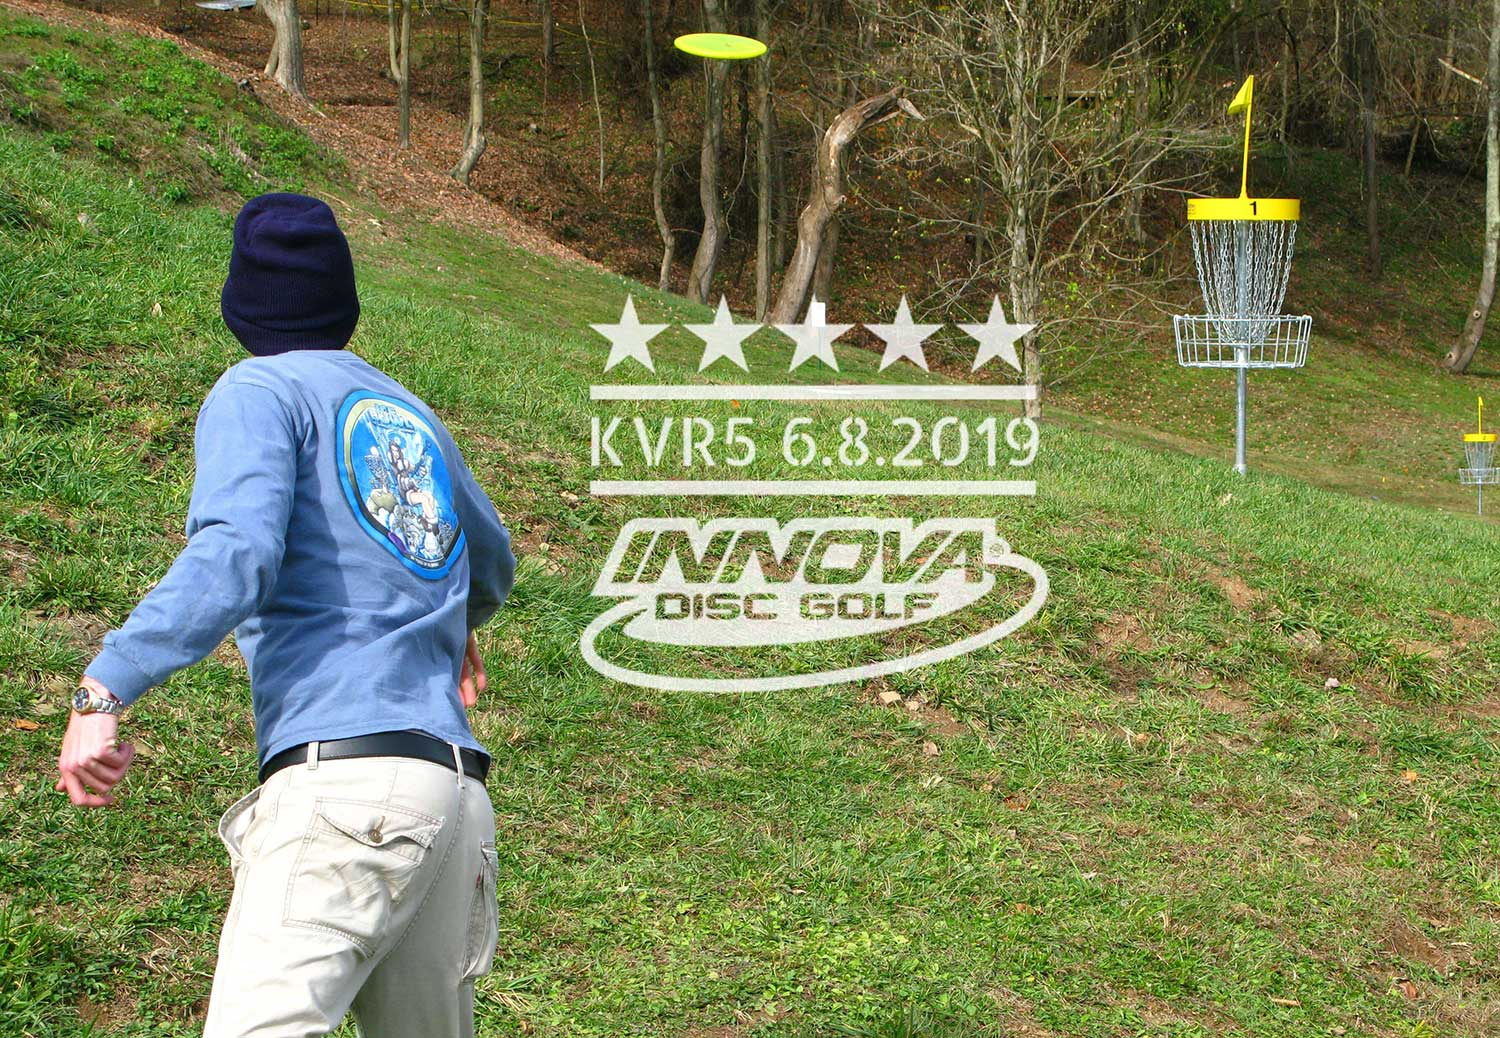 The 5th Annual Kanawha Valley Regional Disc Golf Tournament was held at Redeemer Park on June 8, 2019.